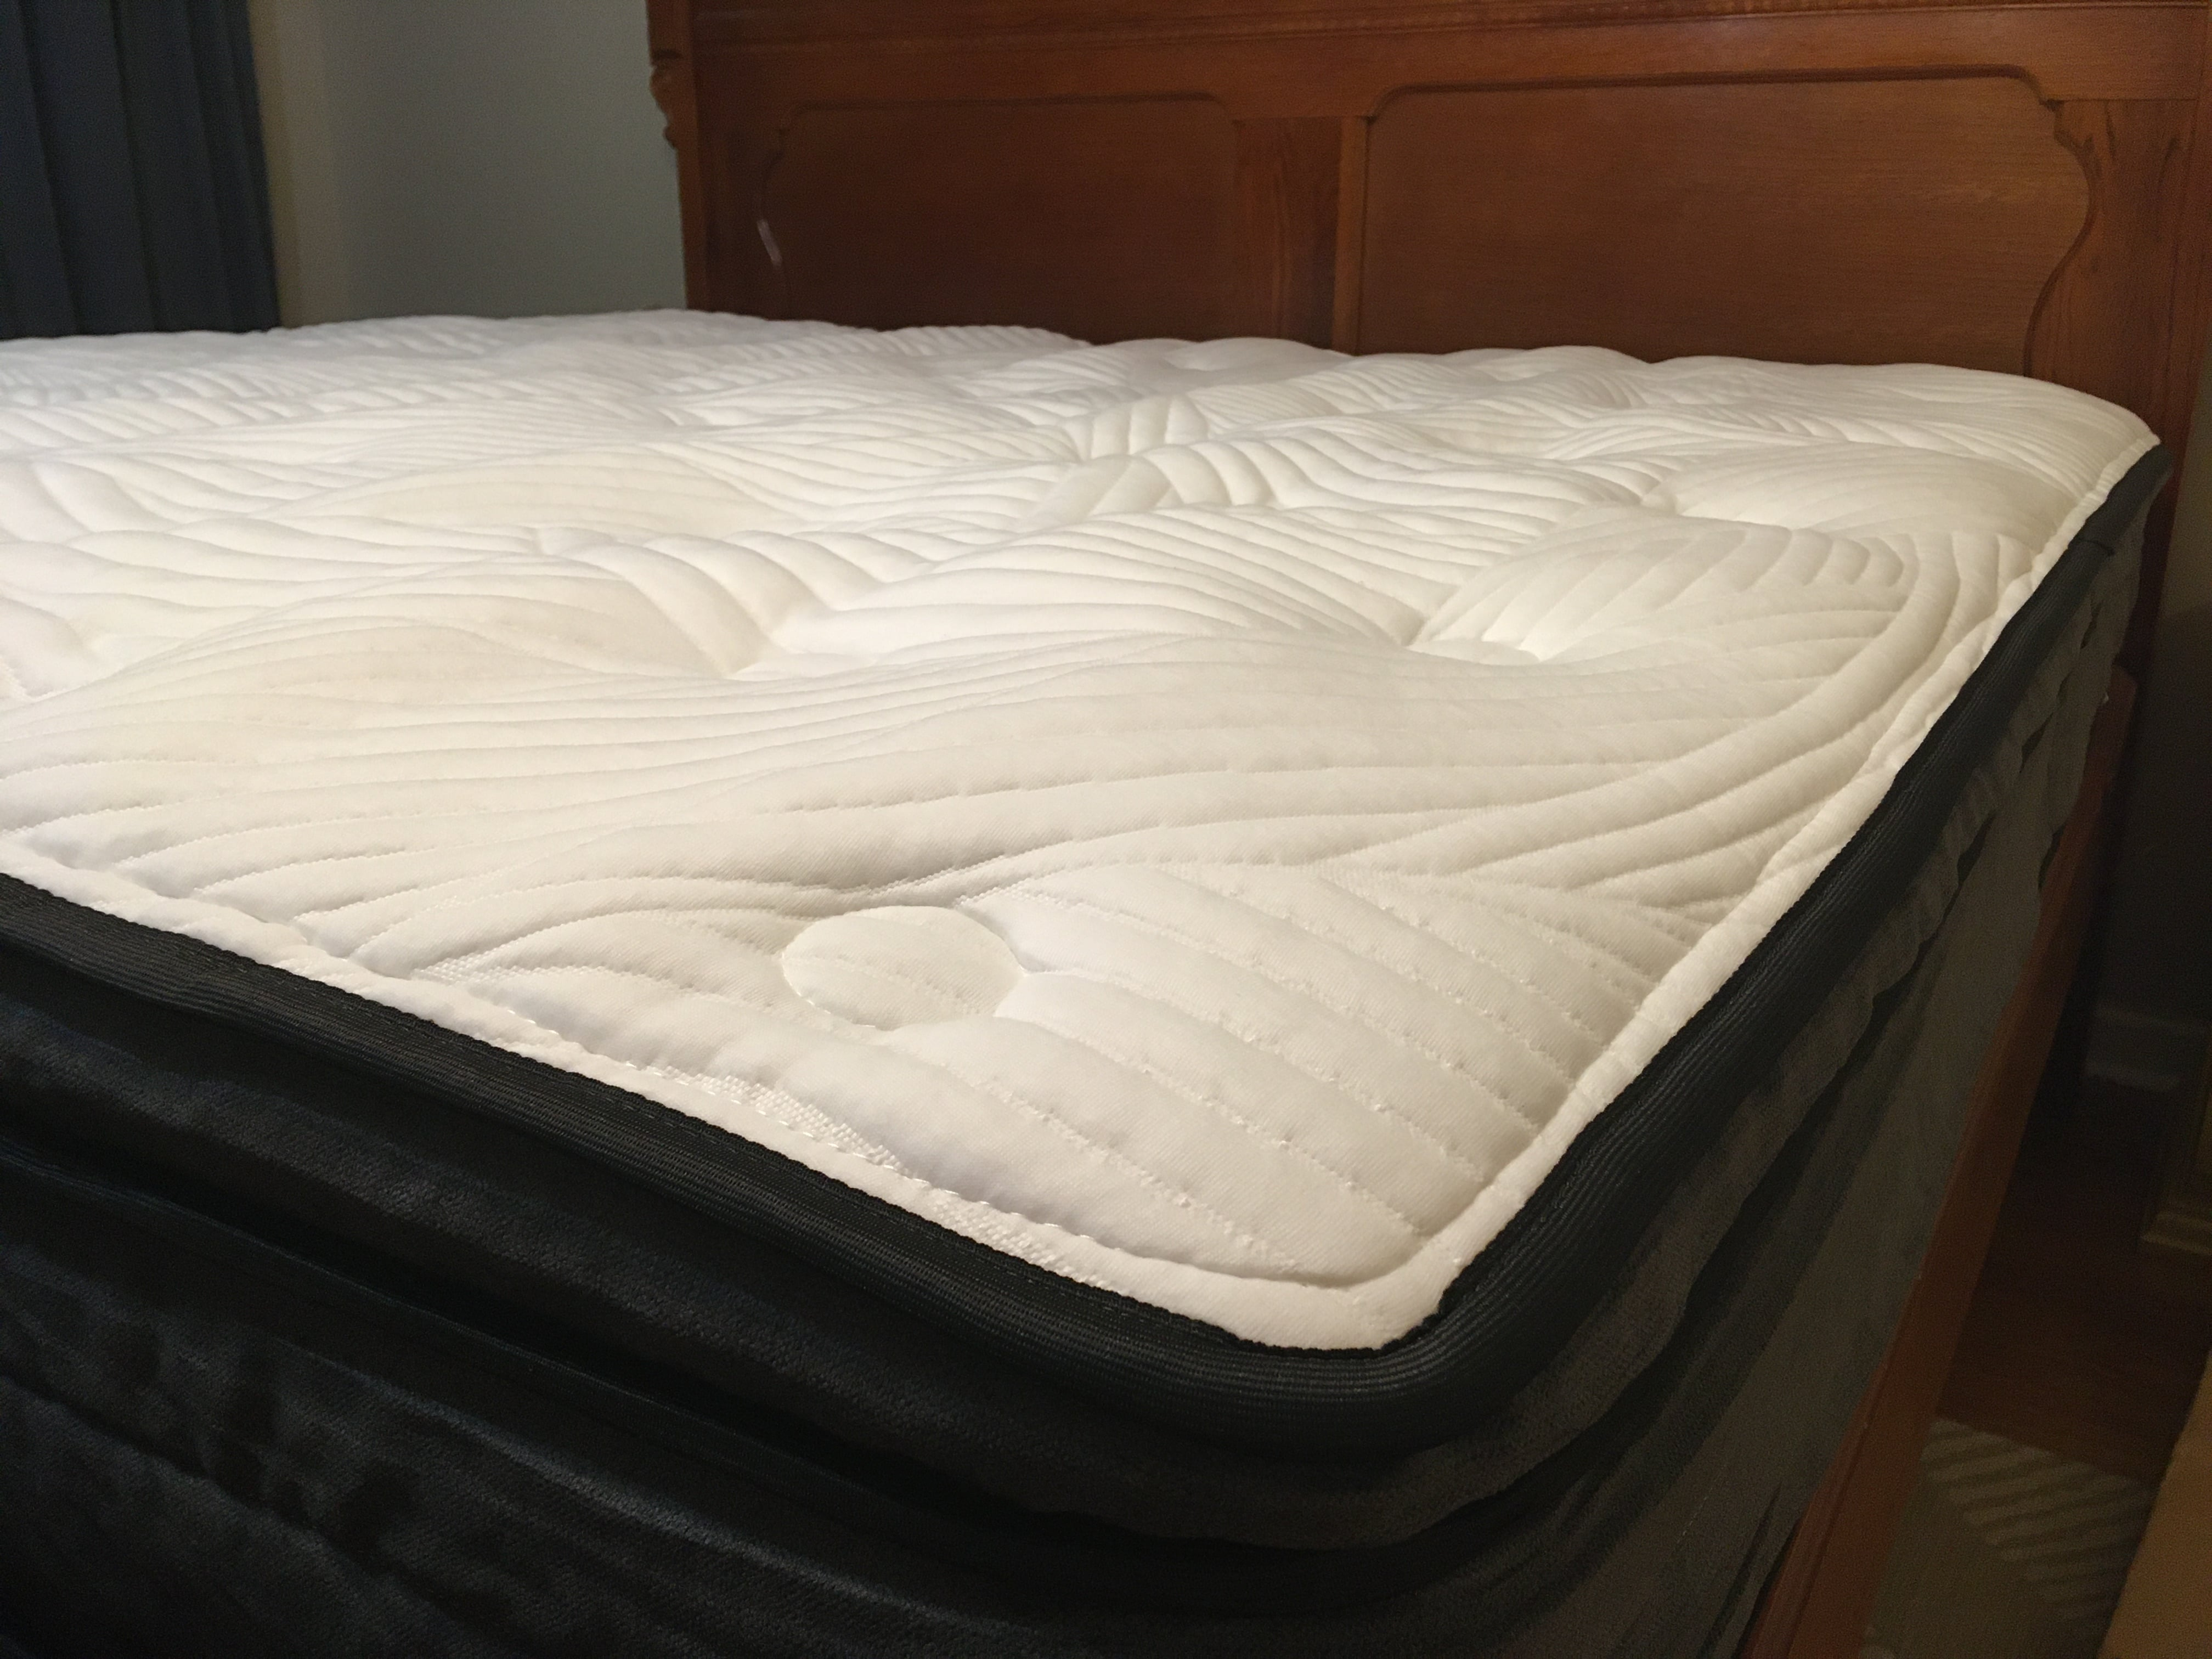 Sweetnight mattress in bed frame